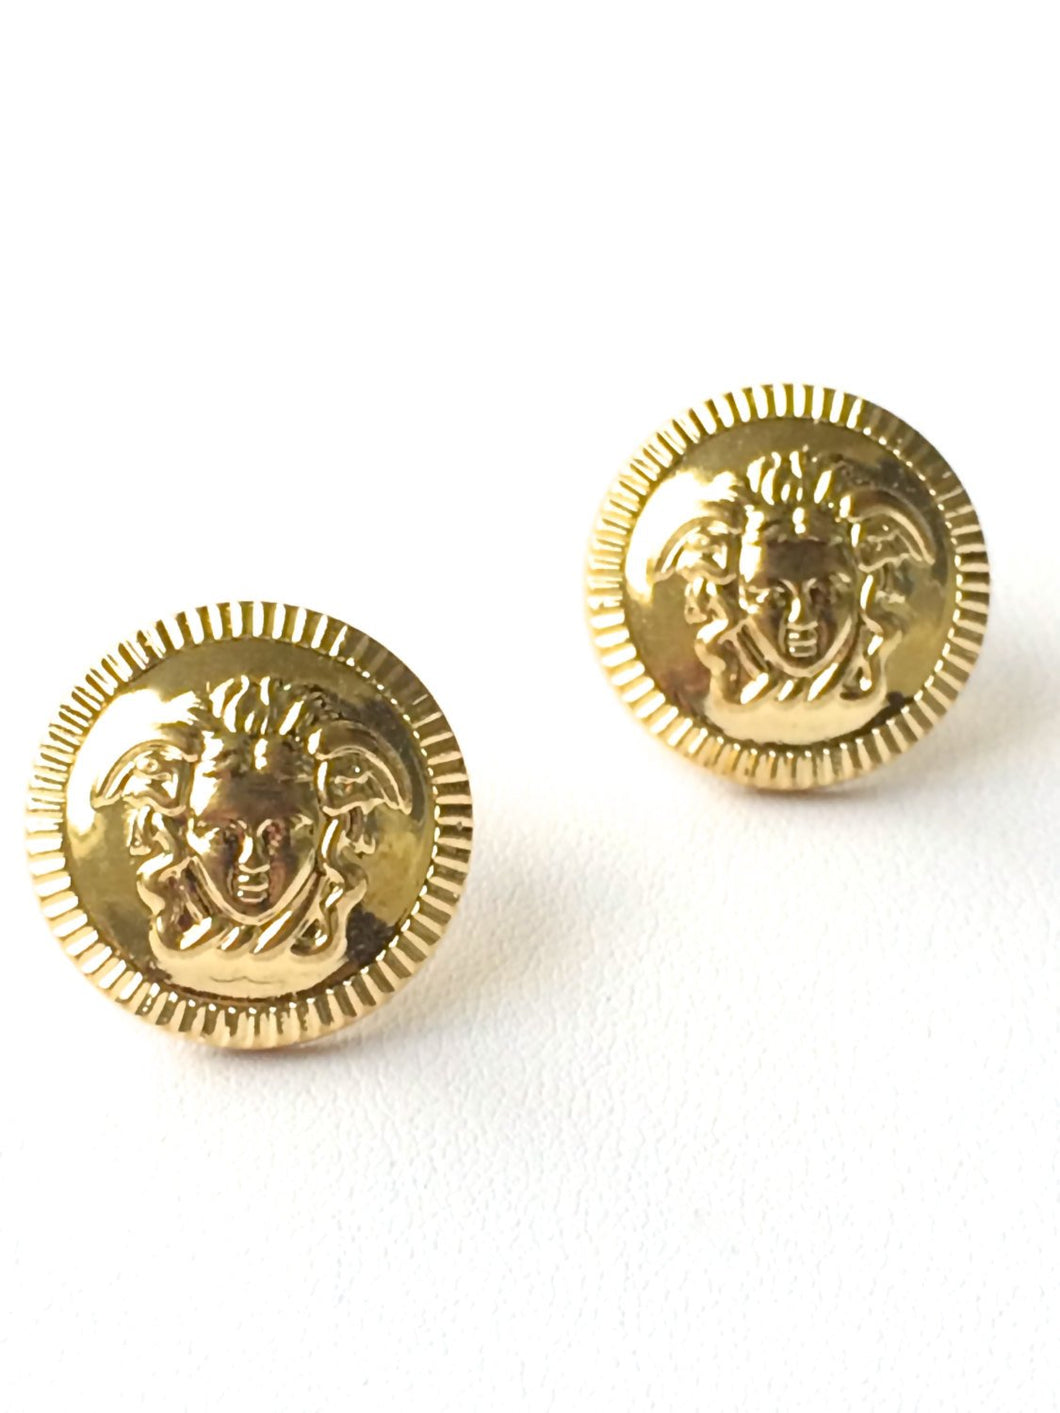 Golden Ethos Medusa Stud Earrings